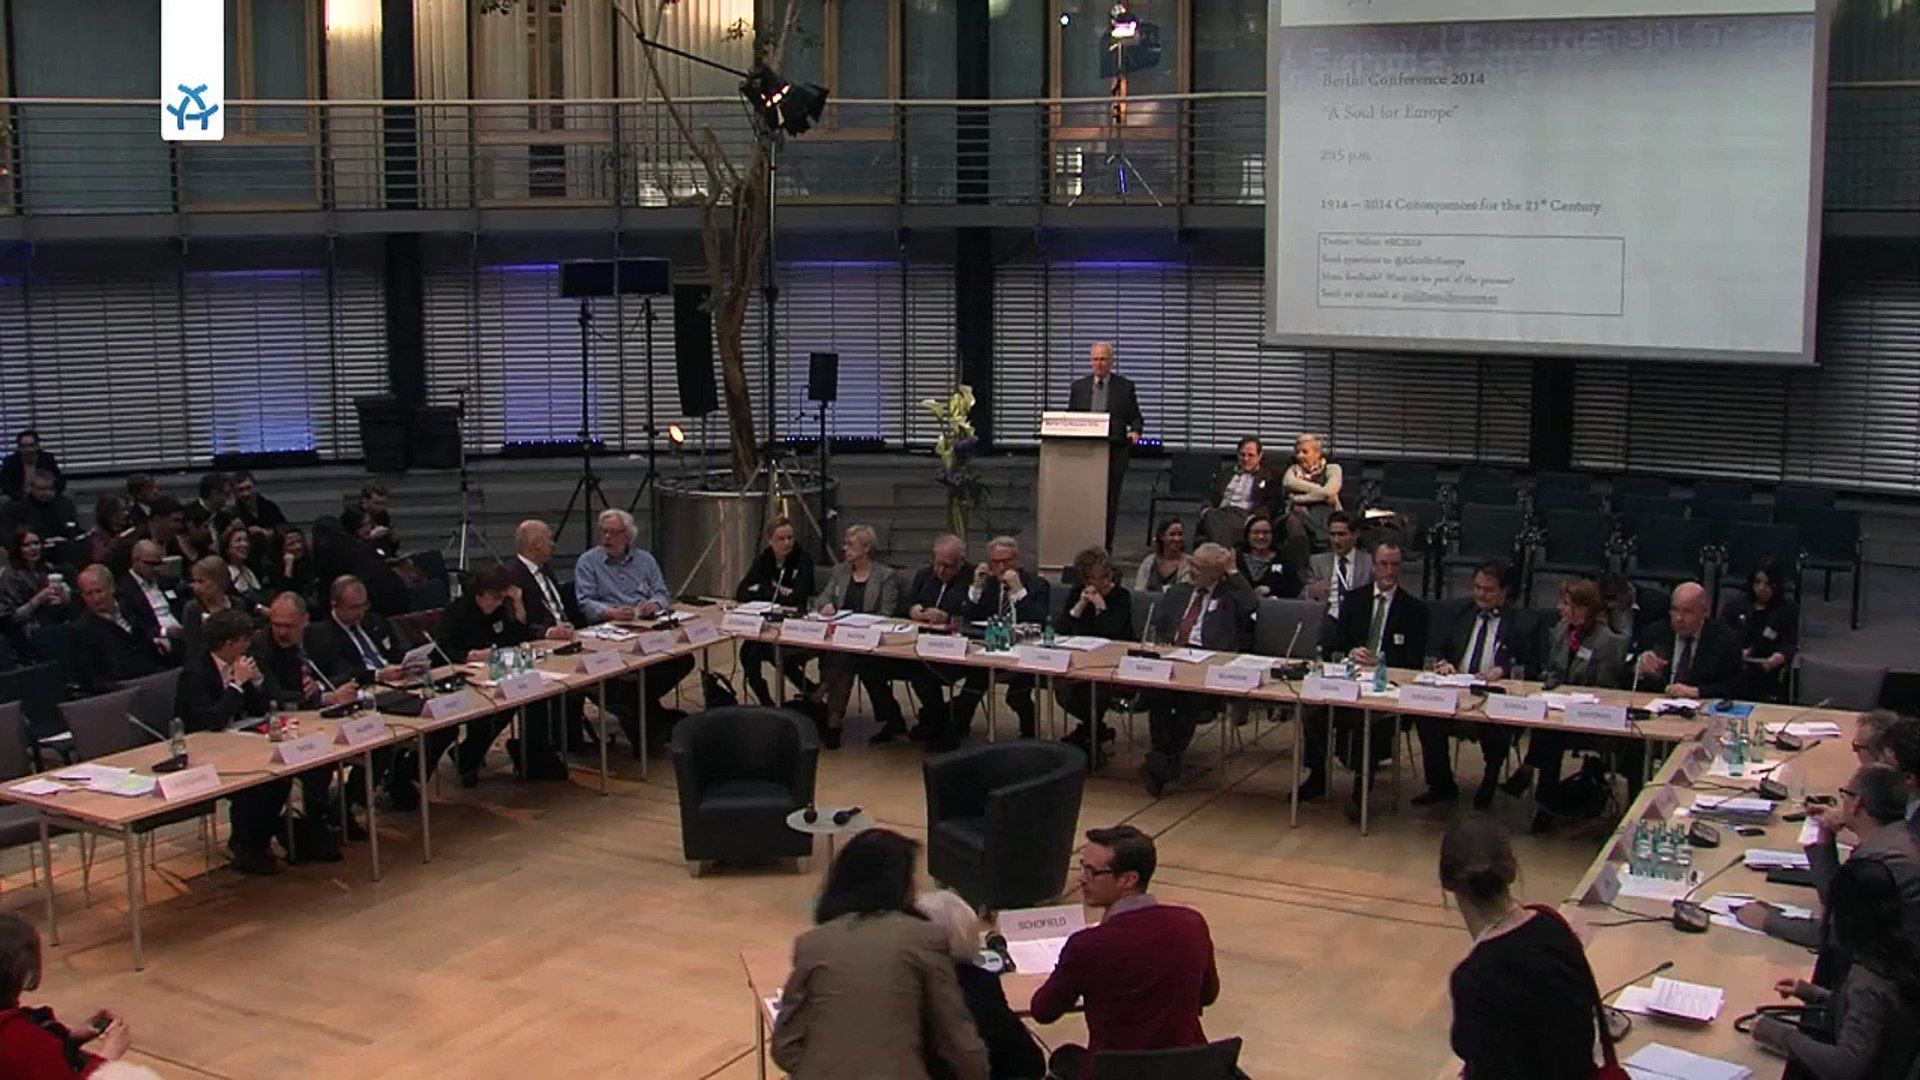 Berlin Conference 2014: Introduction by Volker Hassemer (in German)